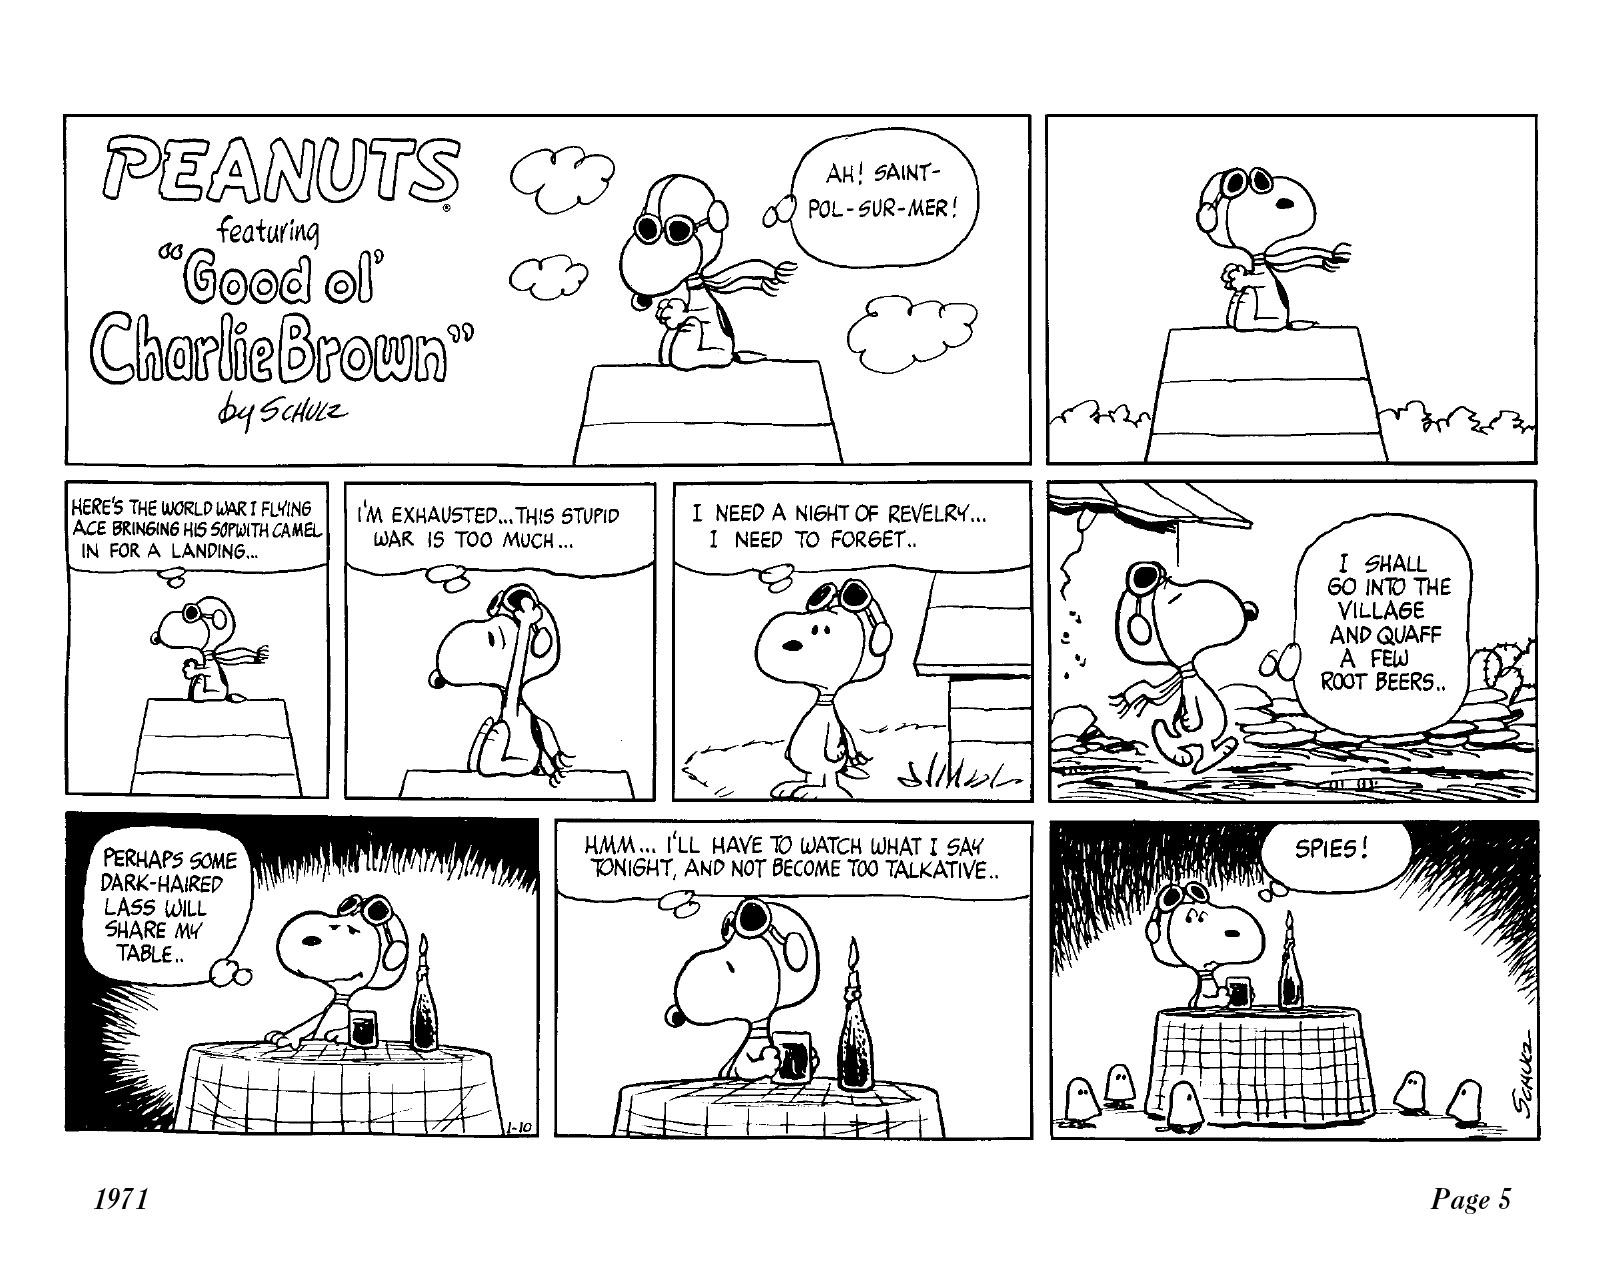 Complete Peanuts 1971 review